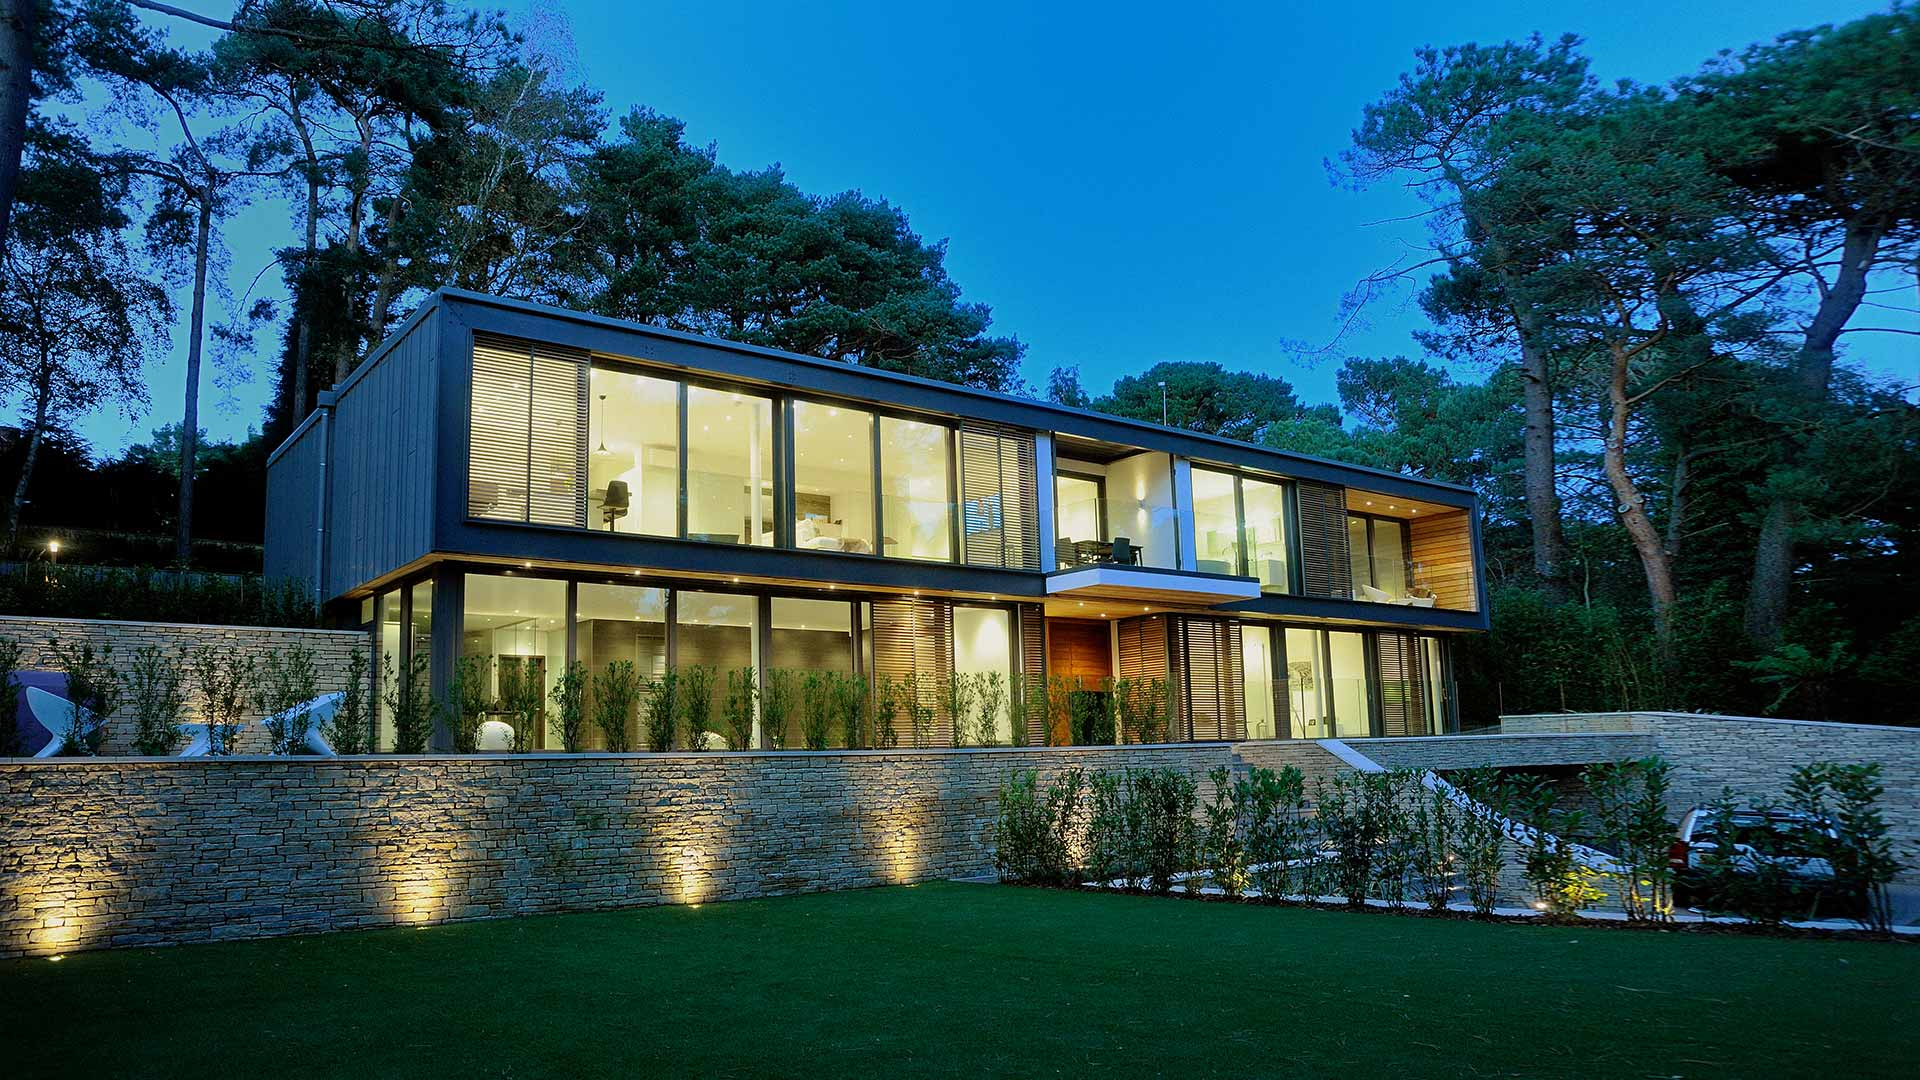 Modern woodland house poole dorset western design - Architects poole dorset ...